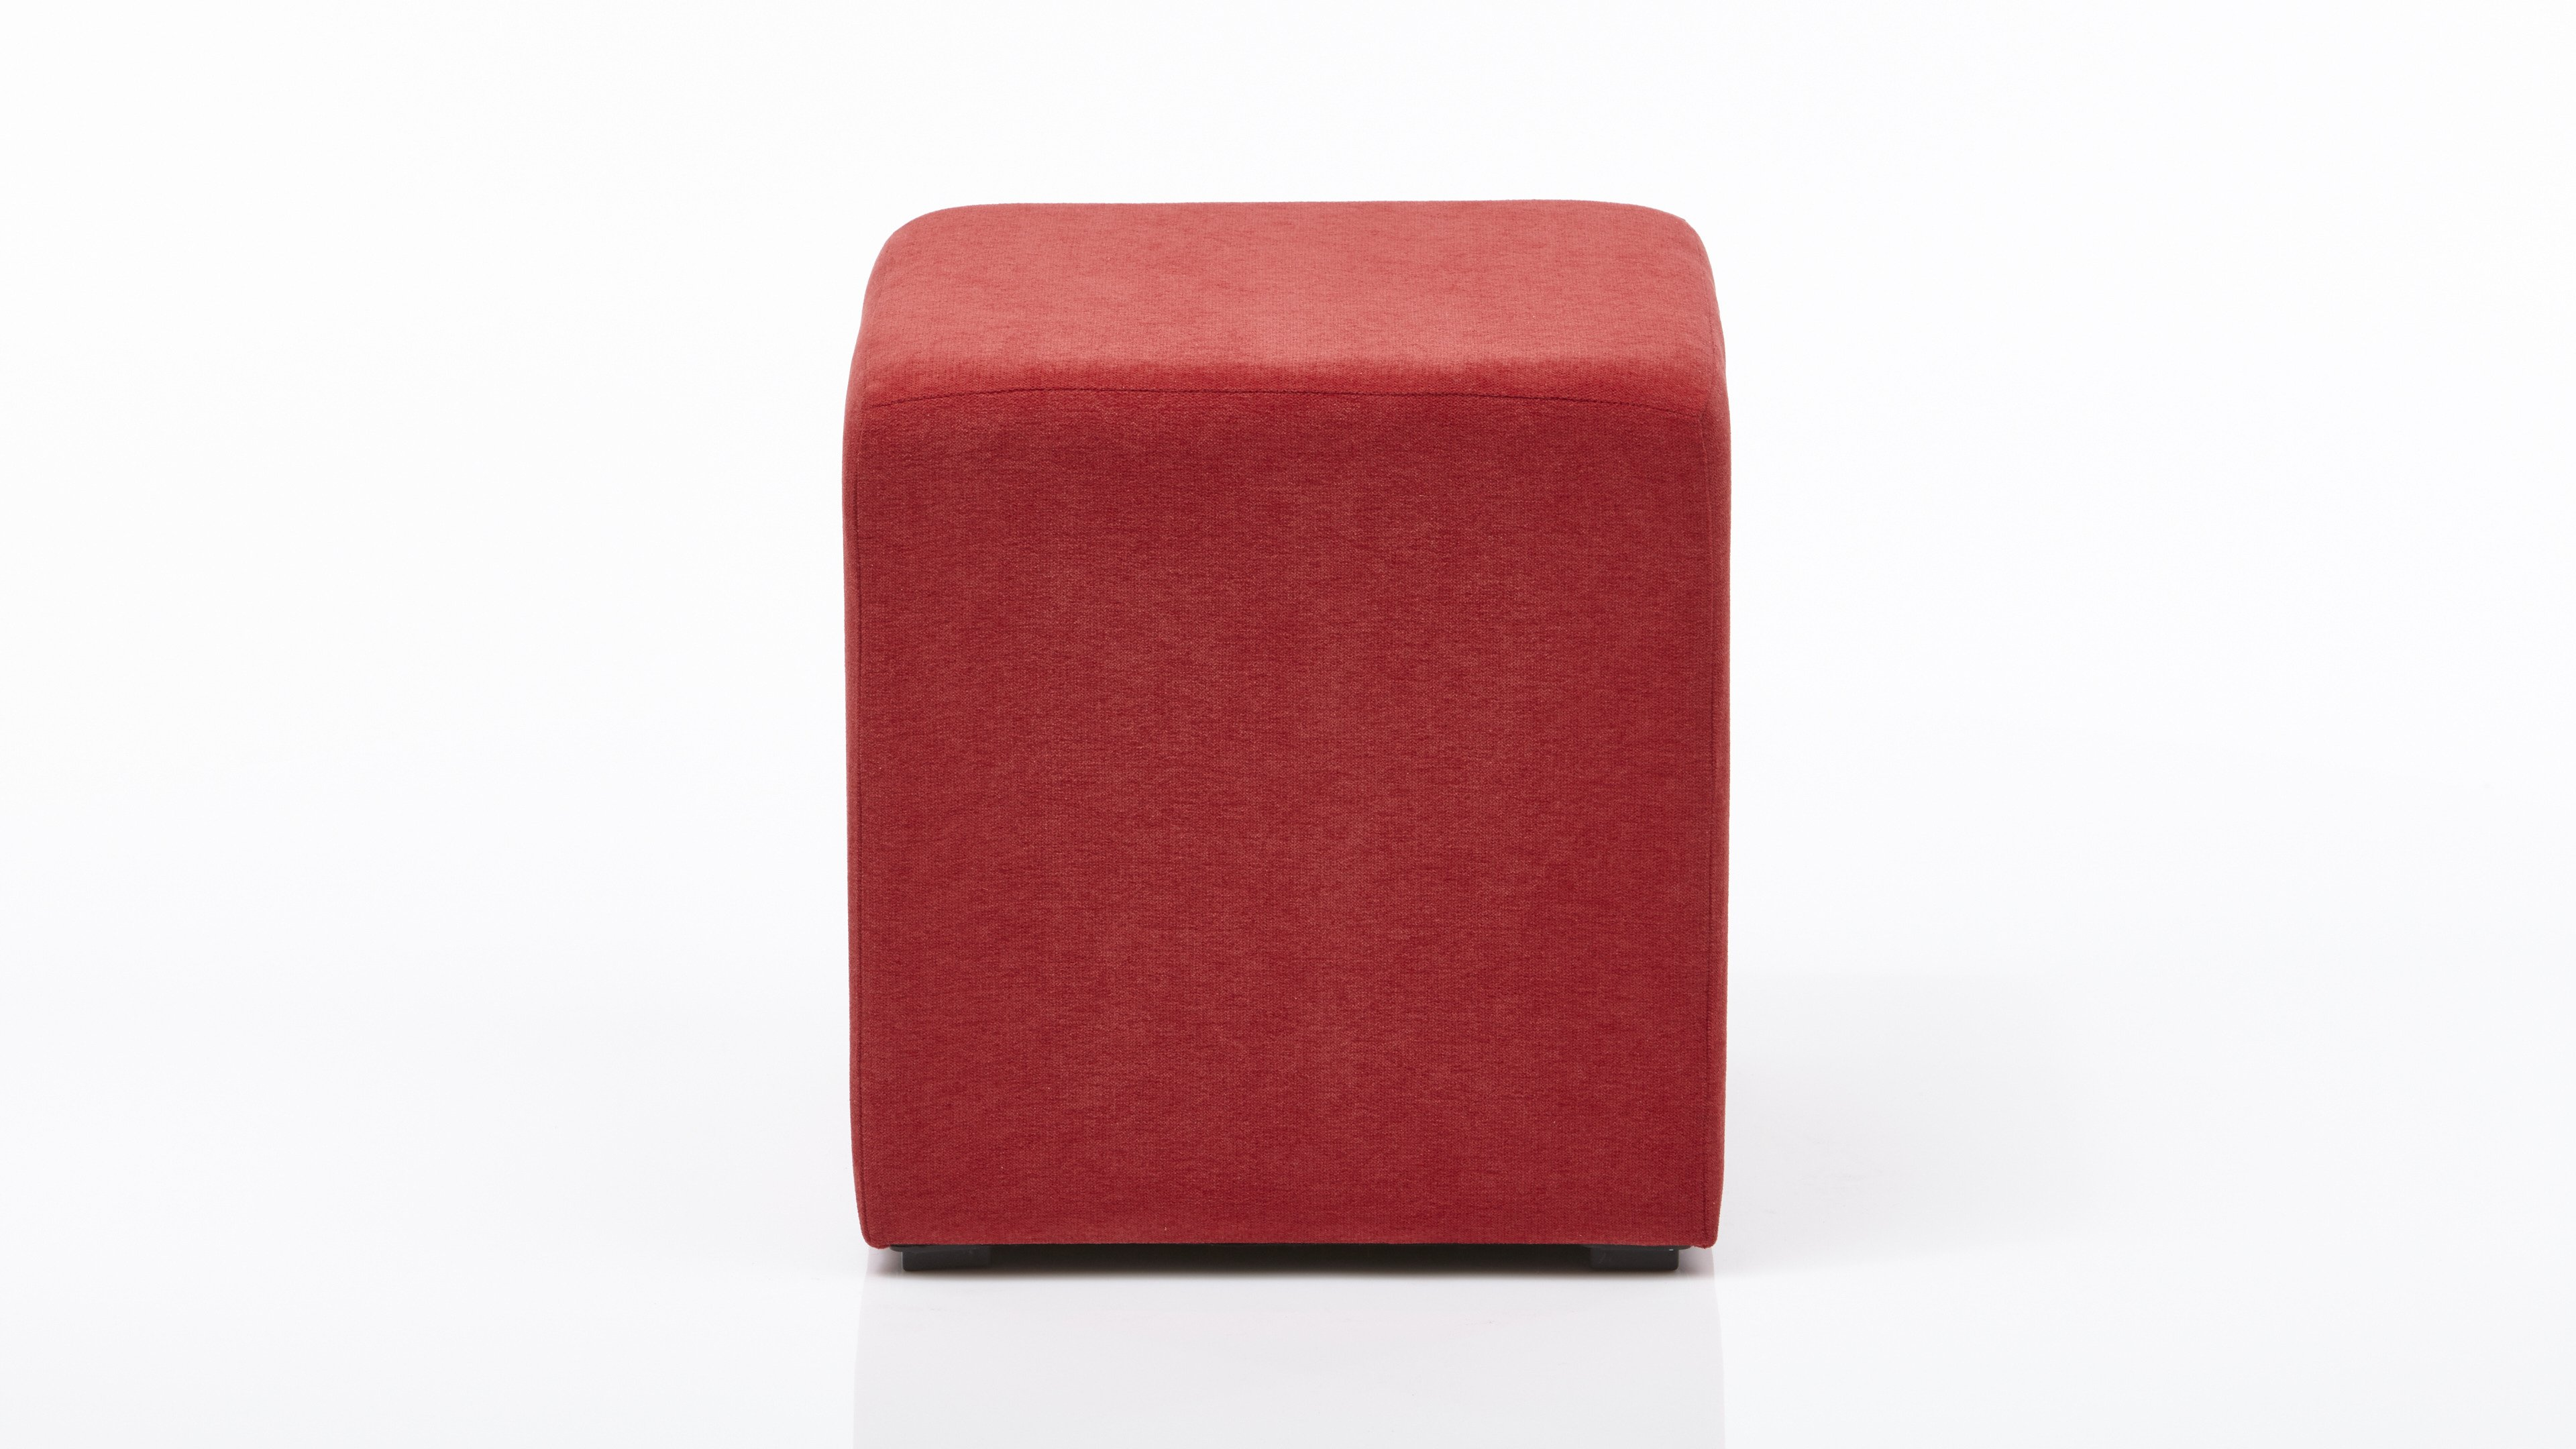 Hocker Hocker  Bezug Imperio 201 red